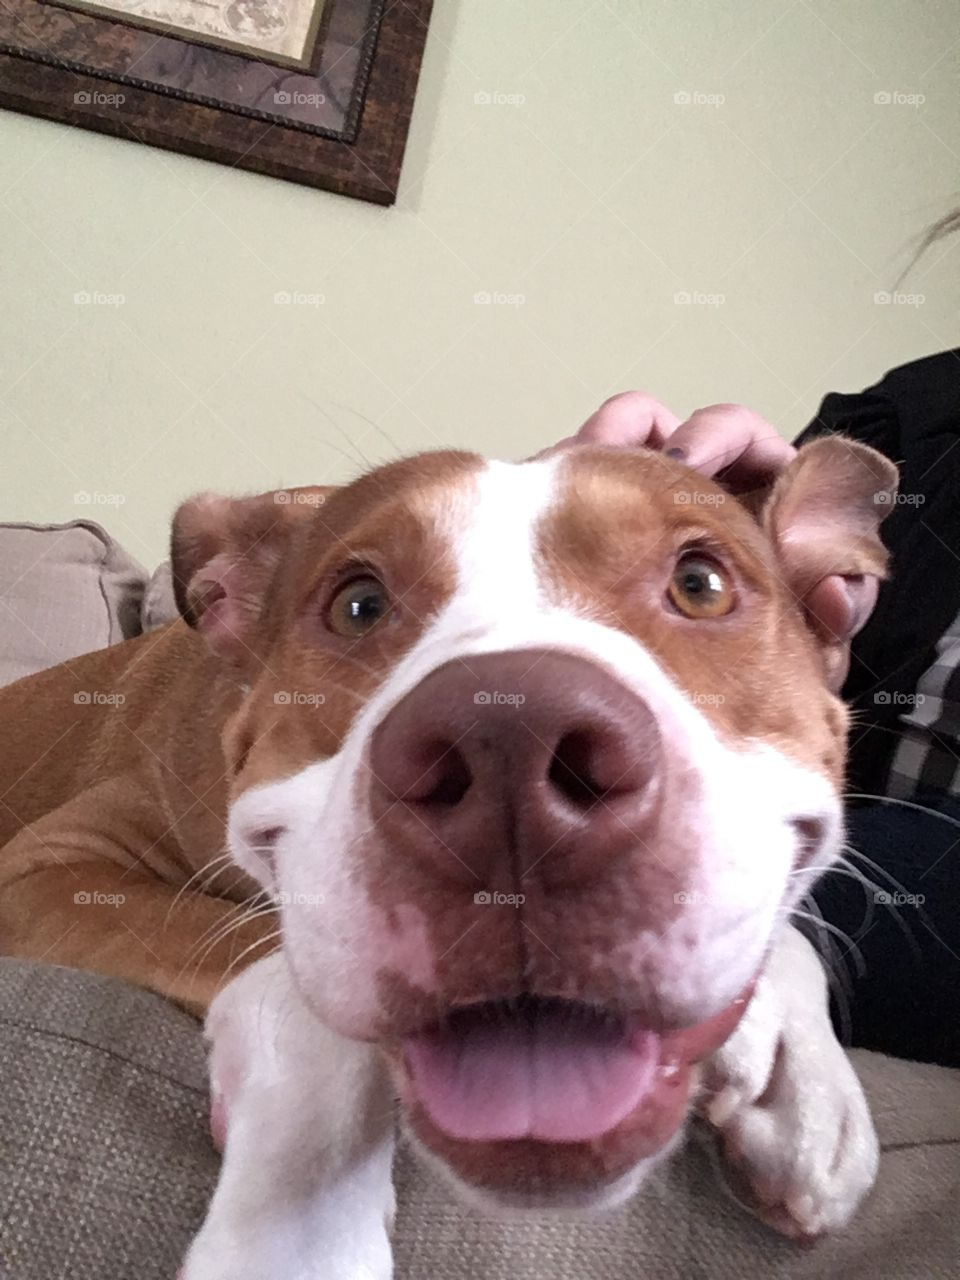 The most adorable rescue pitbull ever with tongue sticking out smiling